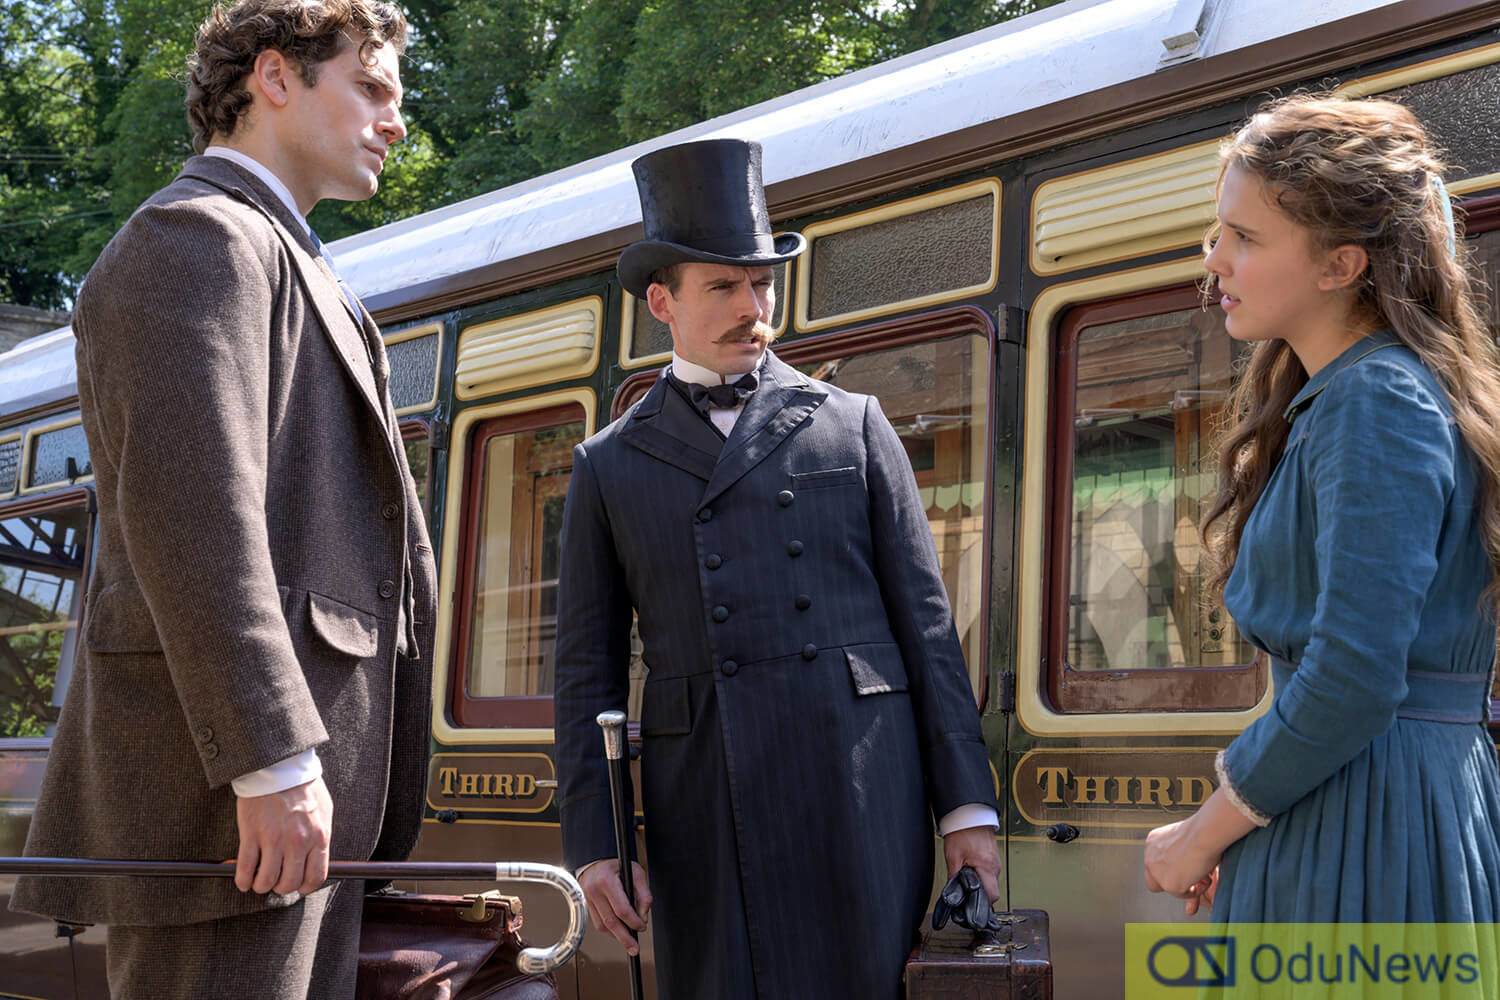 Henry Cavill, Sam Clafin, and Milly Bobby Brown in ENOLA HOLMES